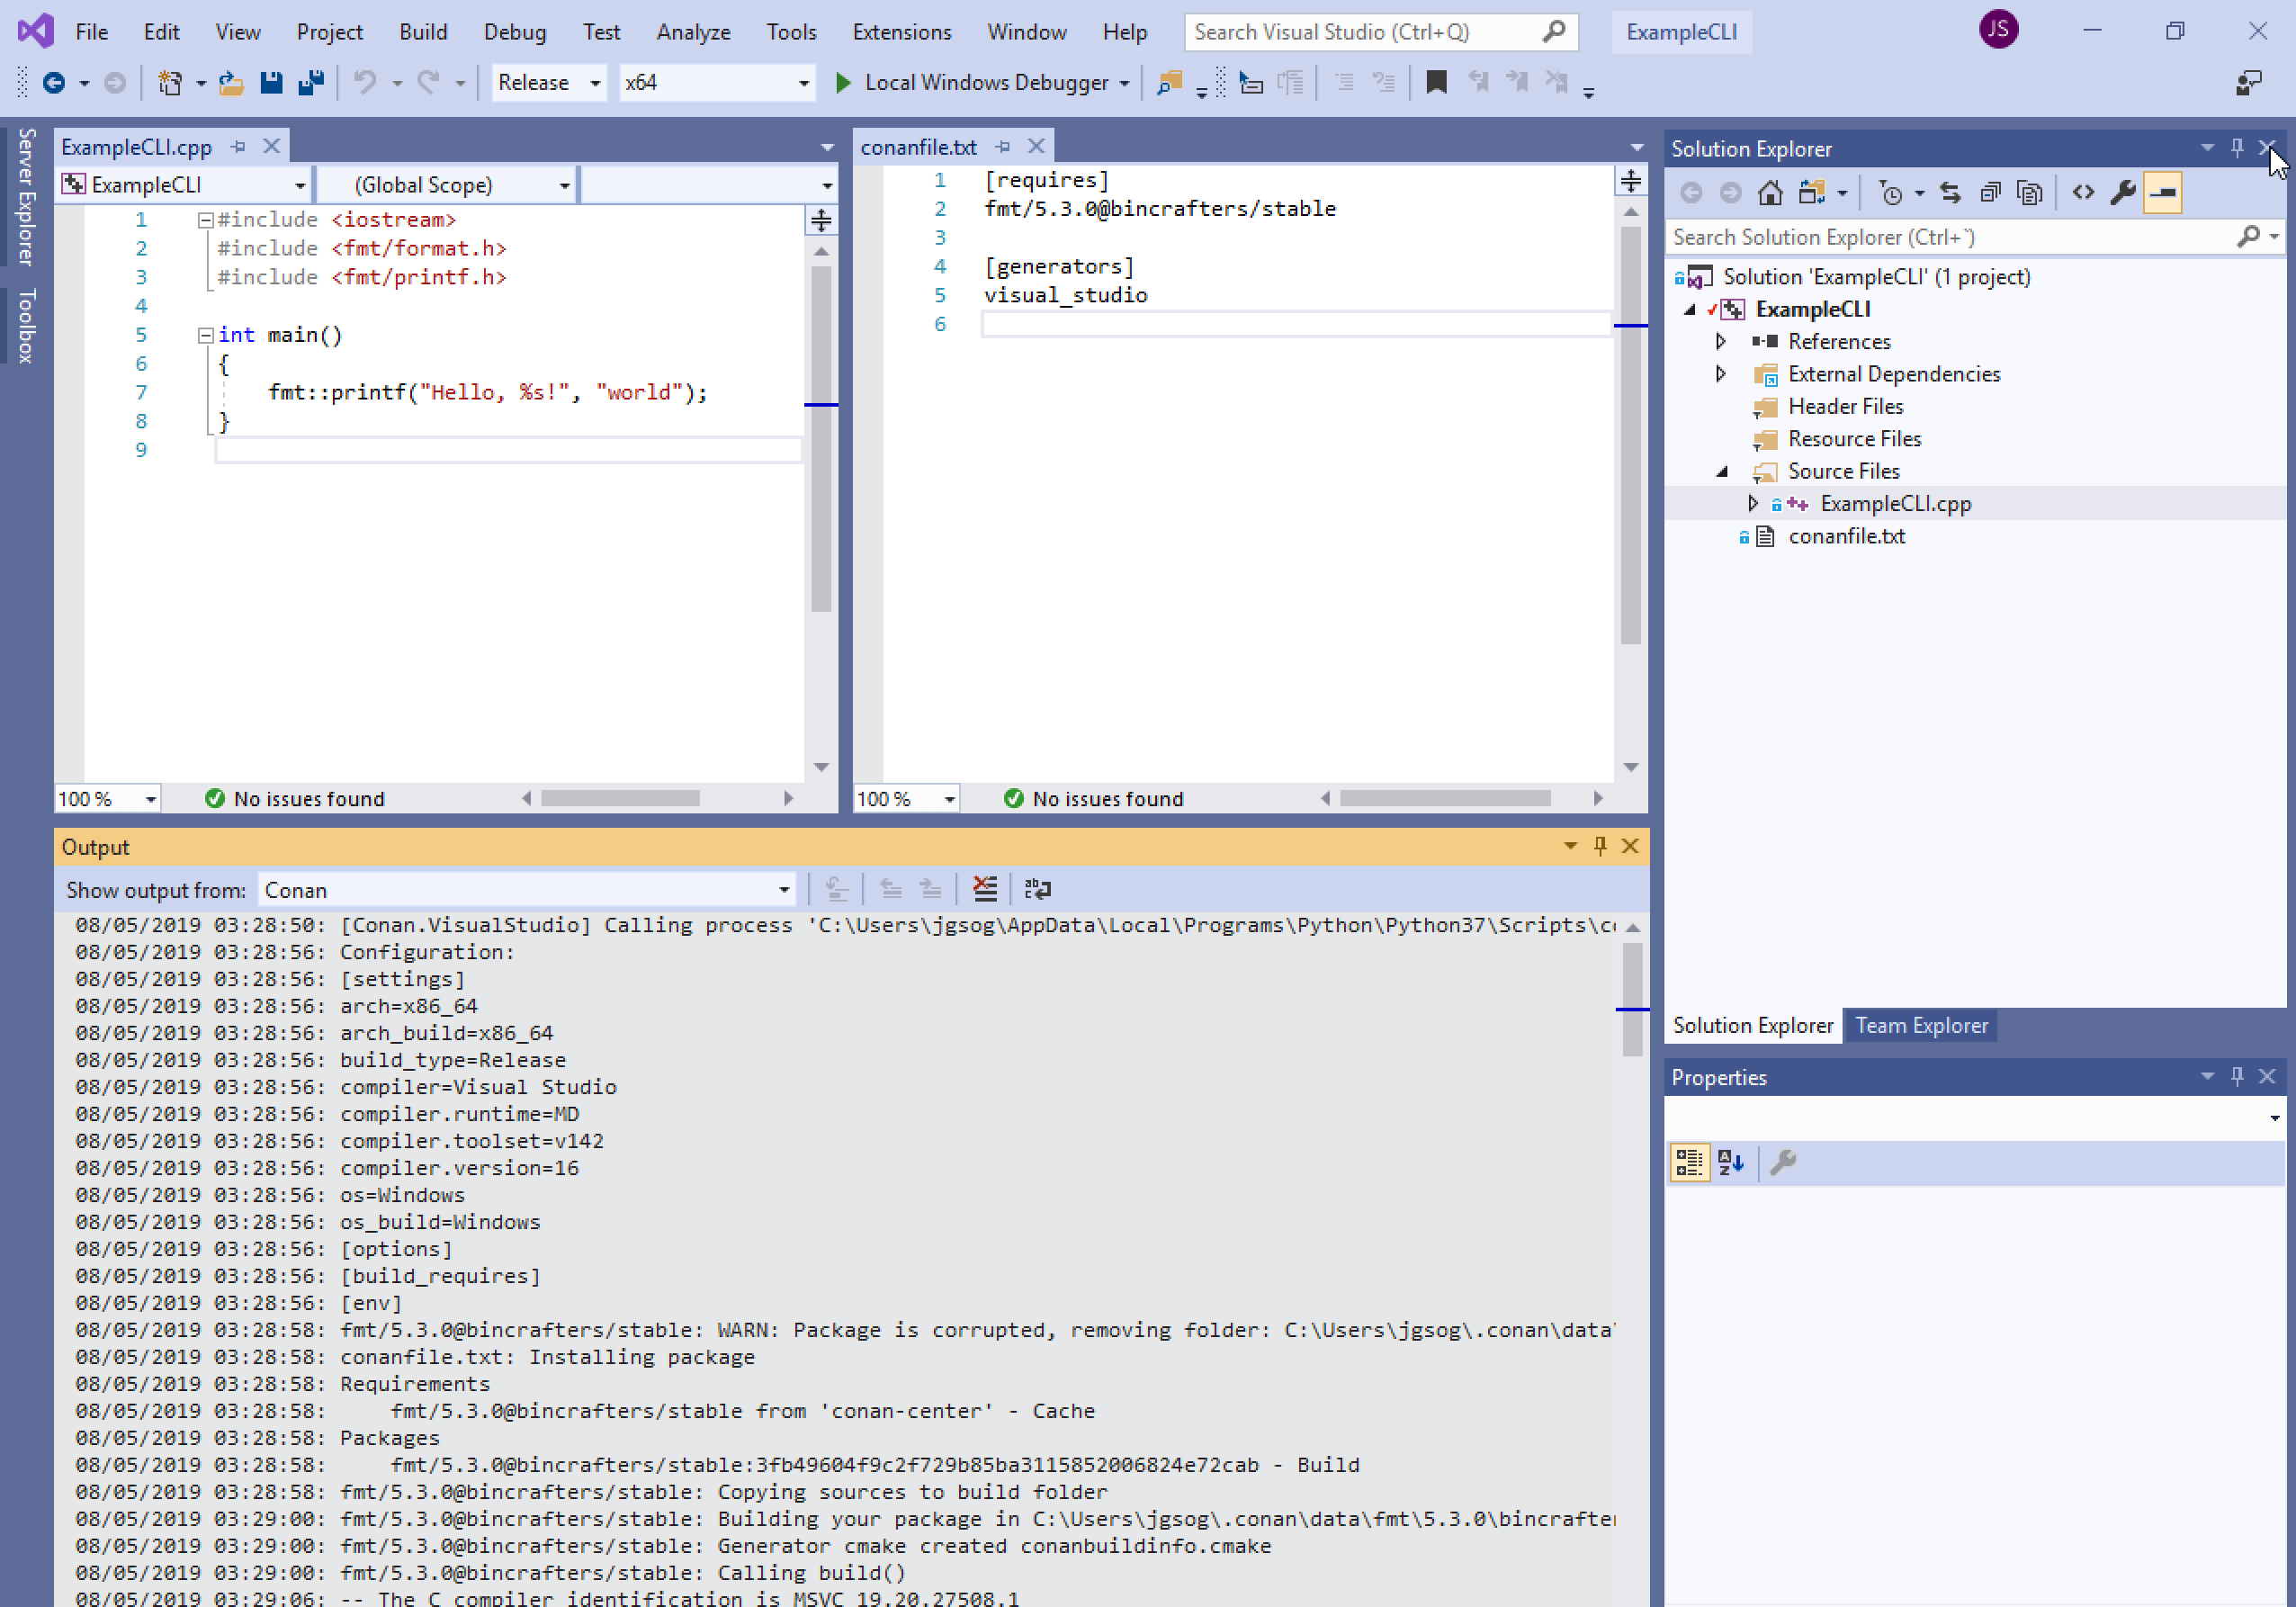 Working on Visual Studio